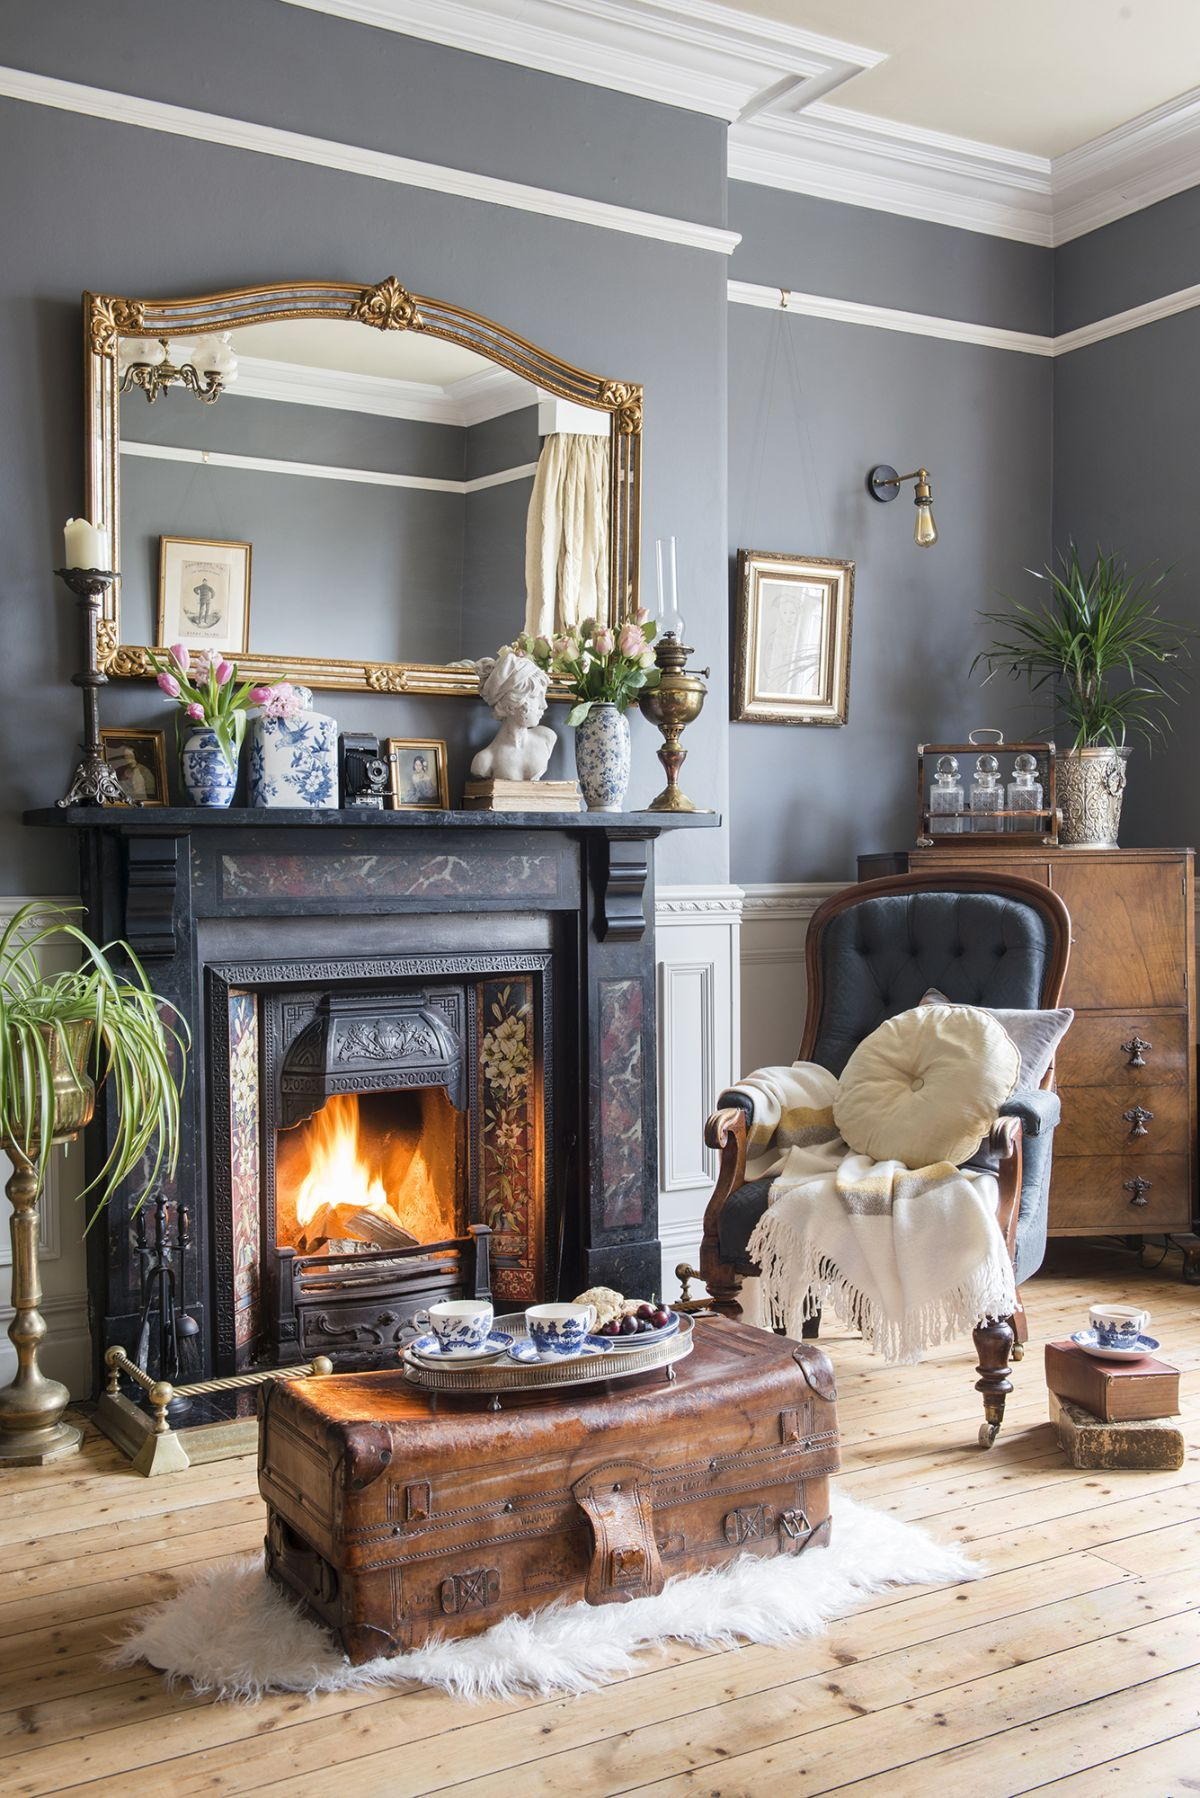 Photo of a renovated Victorian townhouse | Real Homes